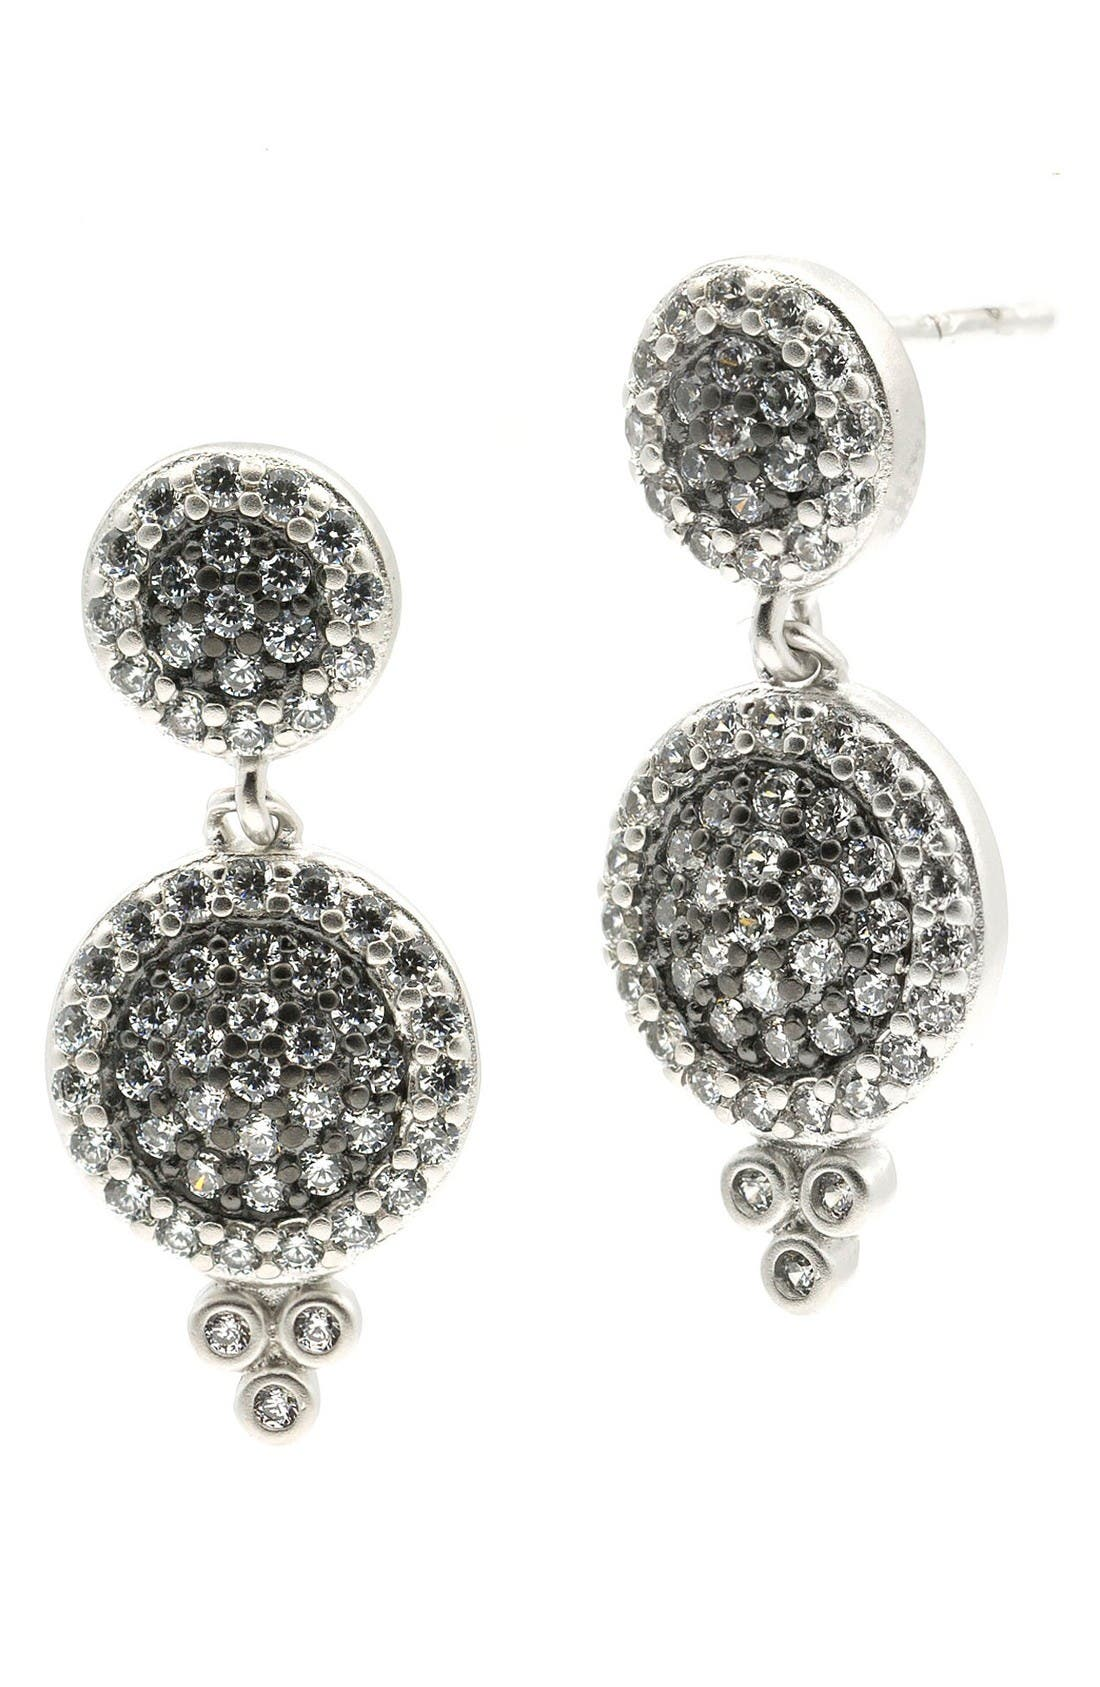 Alternate Image 1 Selected - FREIDA ROTHMAN 'Metropolitan' Drop Earrings